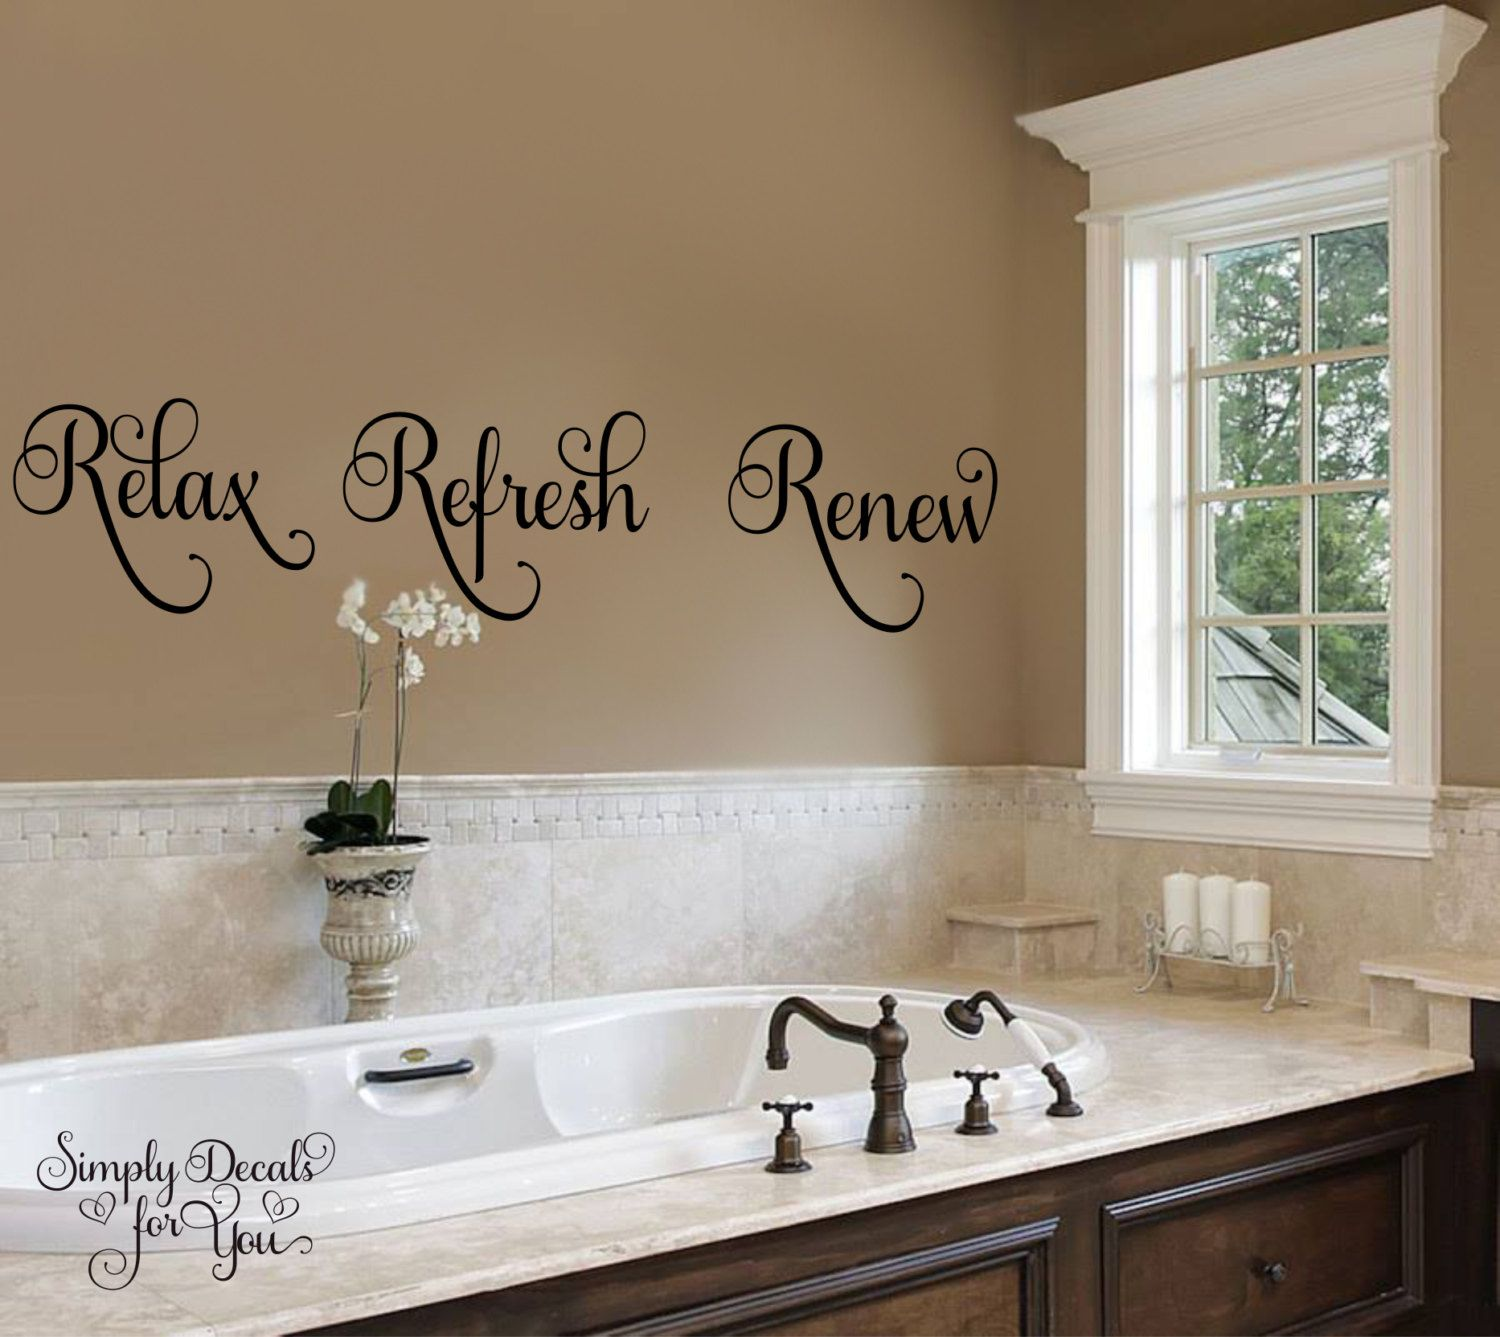 Bathroom wall decor stickers - Relax Refresh Renew Bathroom Wall Decal Bathroom Decal Wall Decal Wall Sticker Home Decor Vinyl Wall Decal Decal Sticker Wall Decor